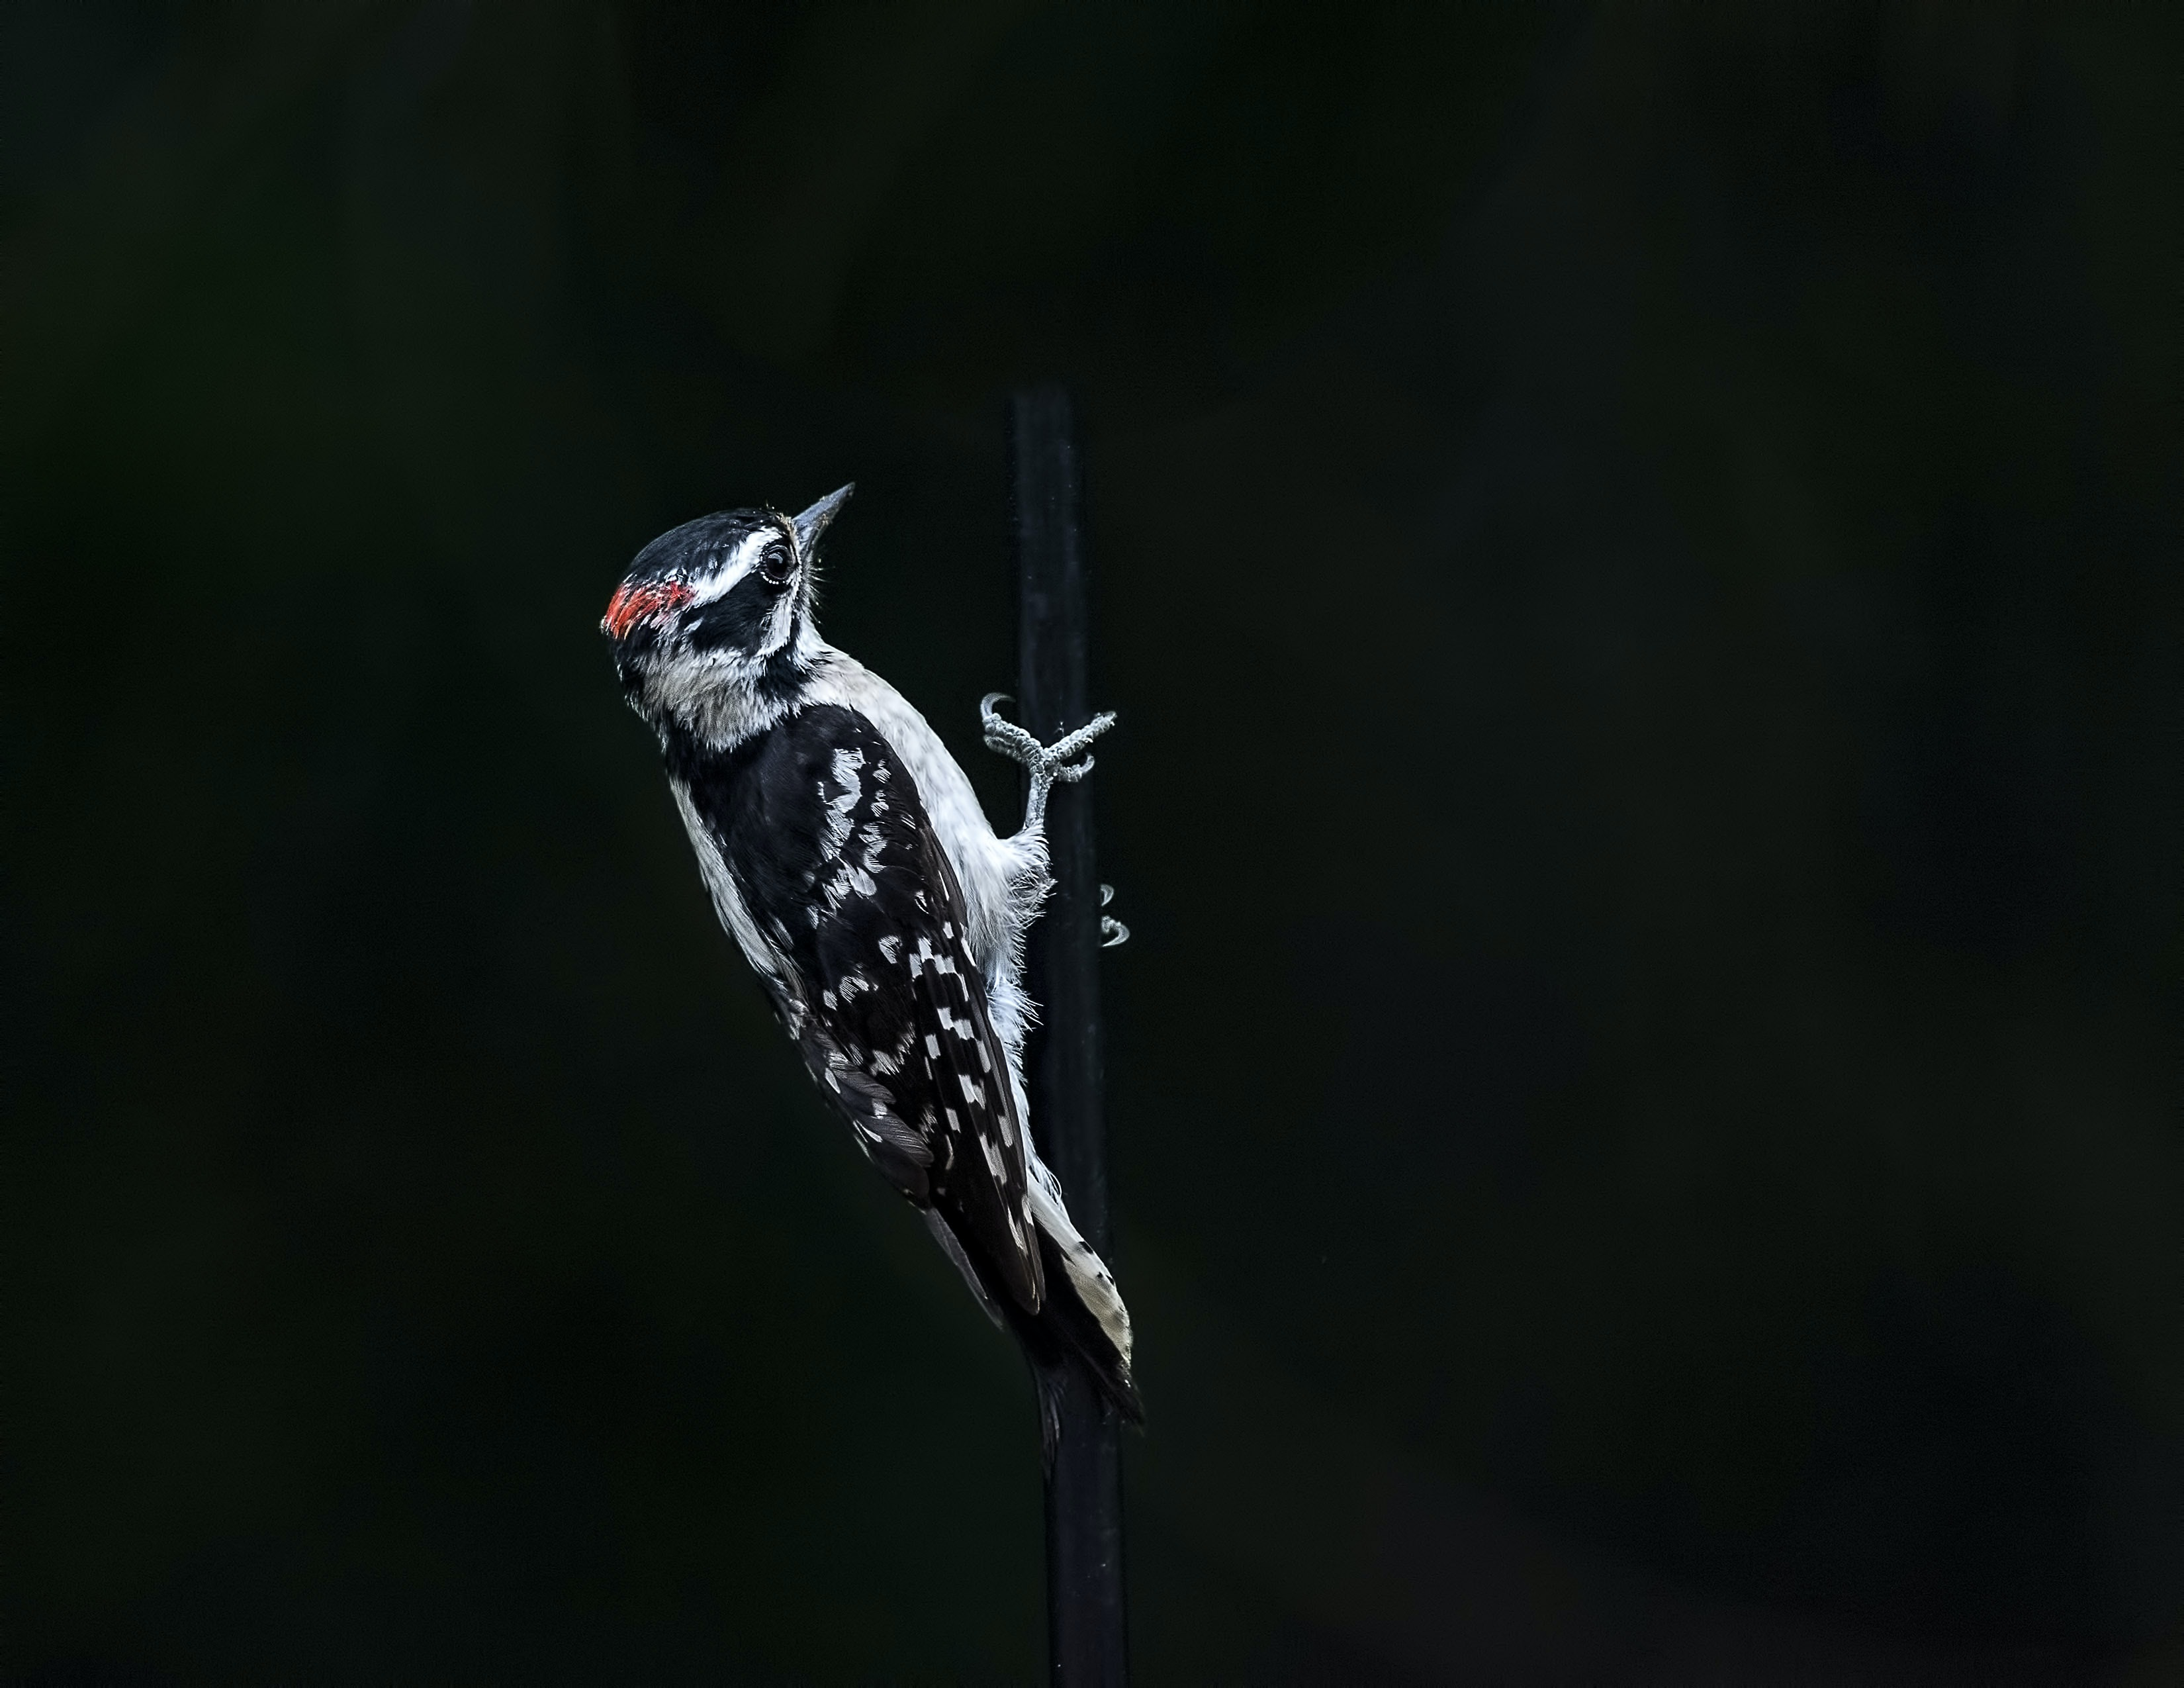 woodpecker on black background